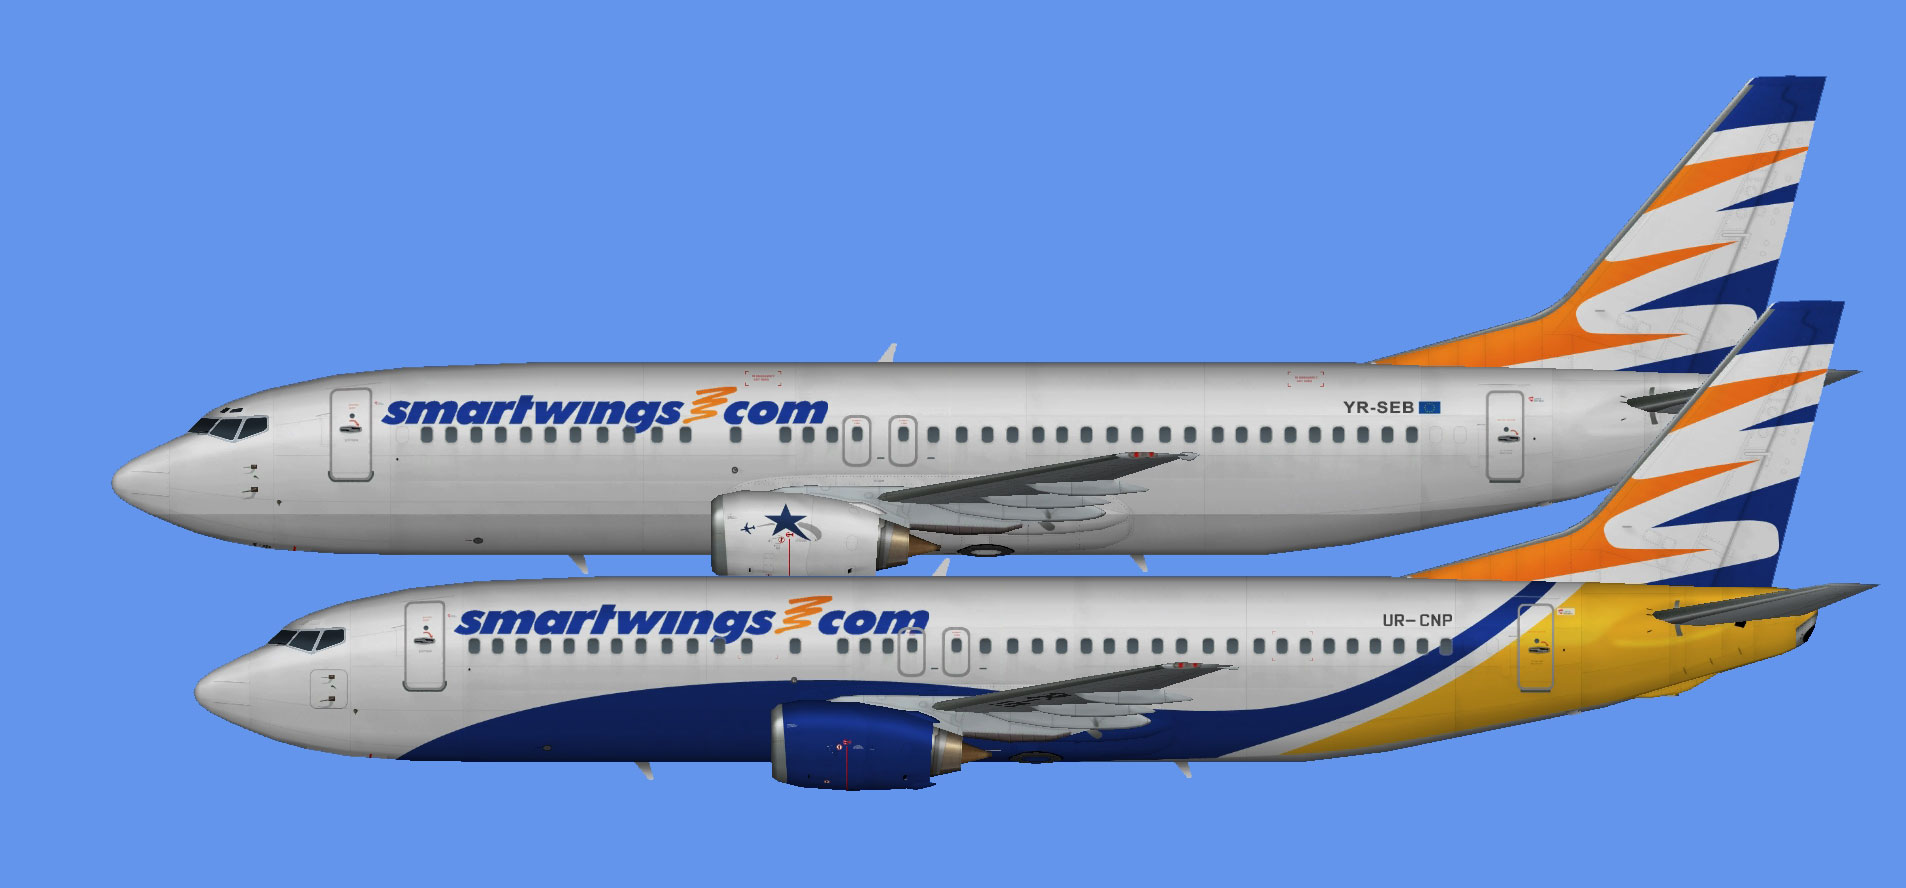 SmartWings 737-400 leases